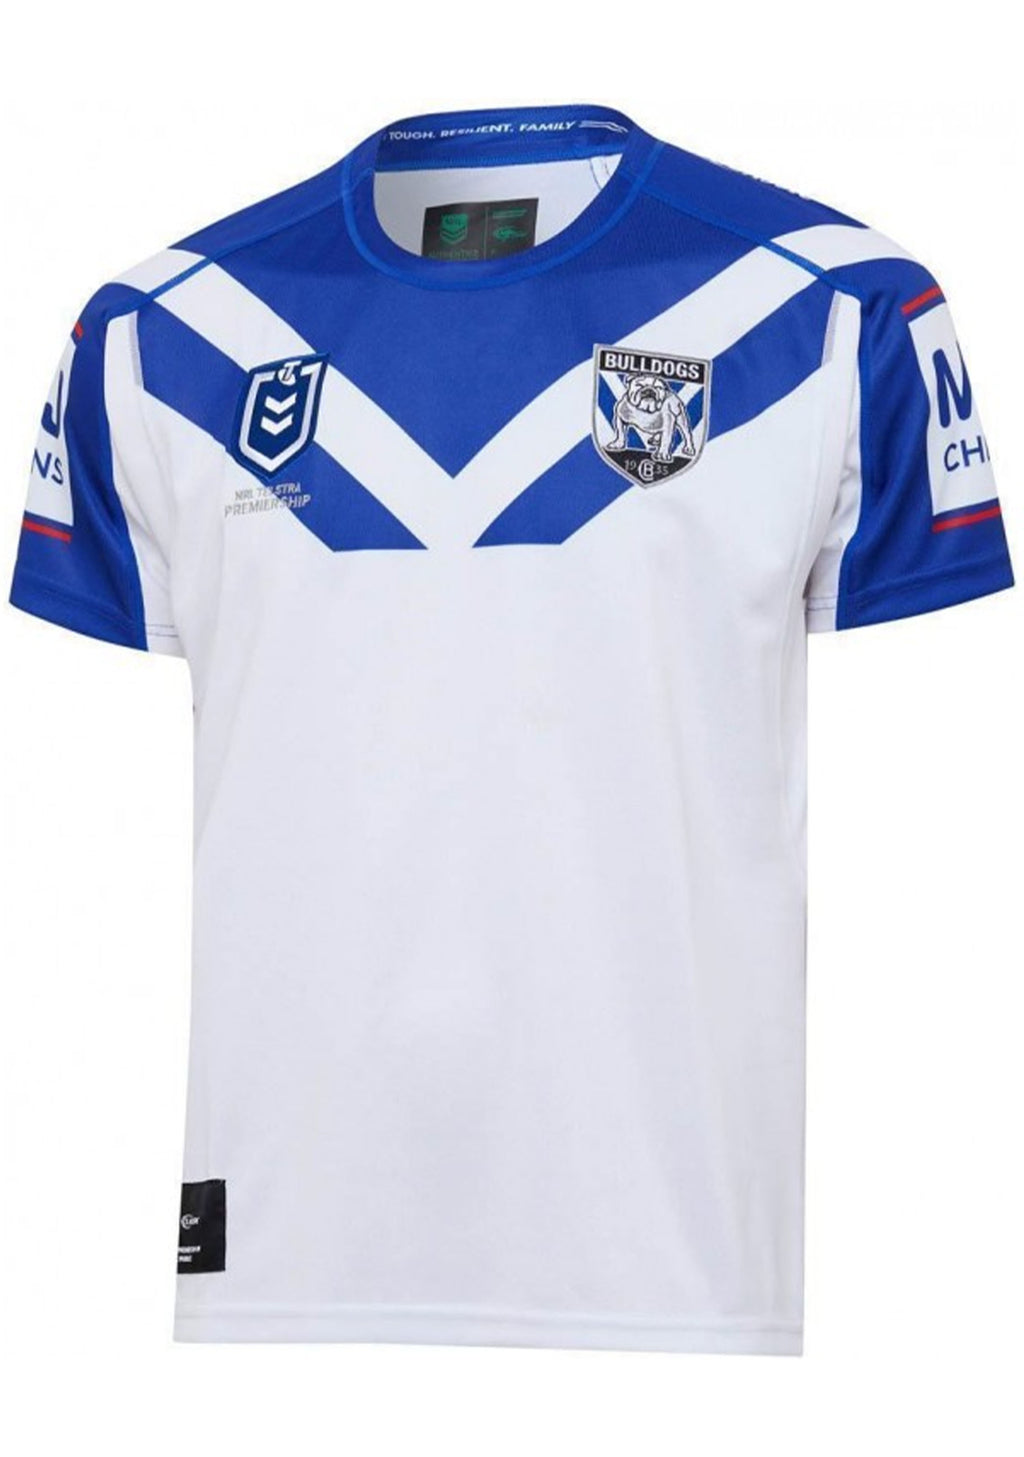 CANTERBURY-BANKSTOWN BULLDOGS 2020 WOMENS REPLICA HOME JERSEY <BR> BR20LHJ